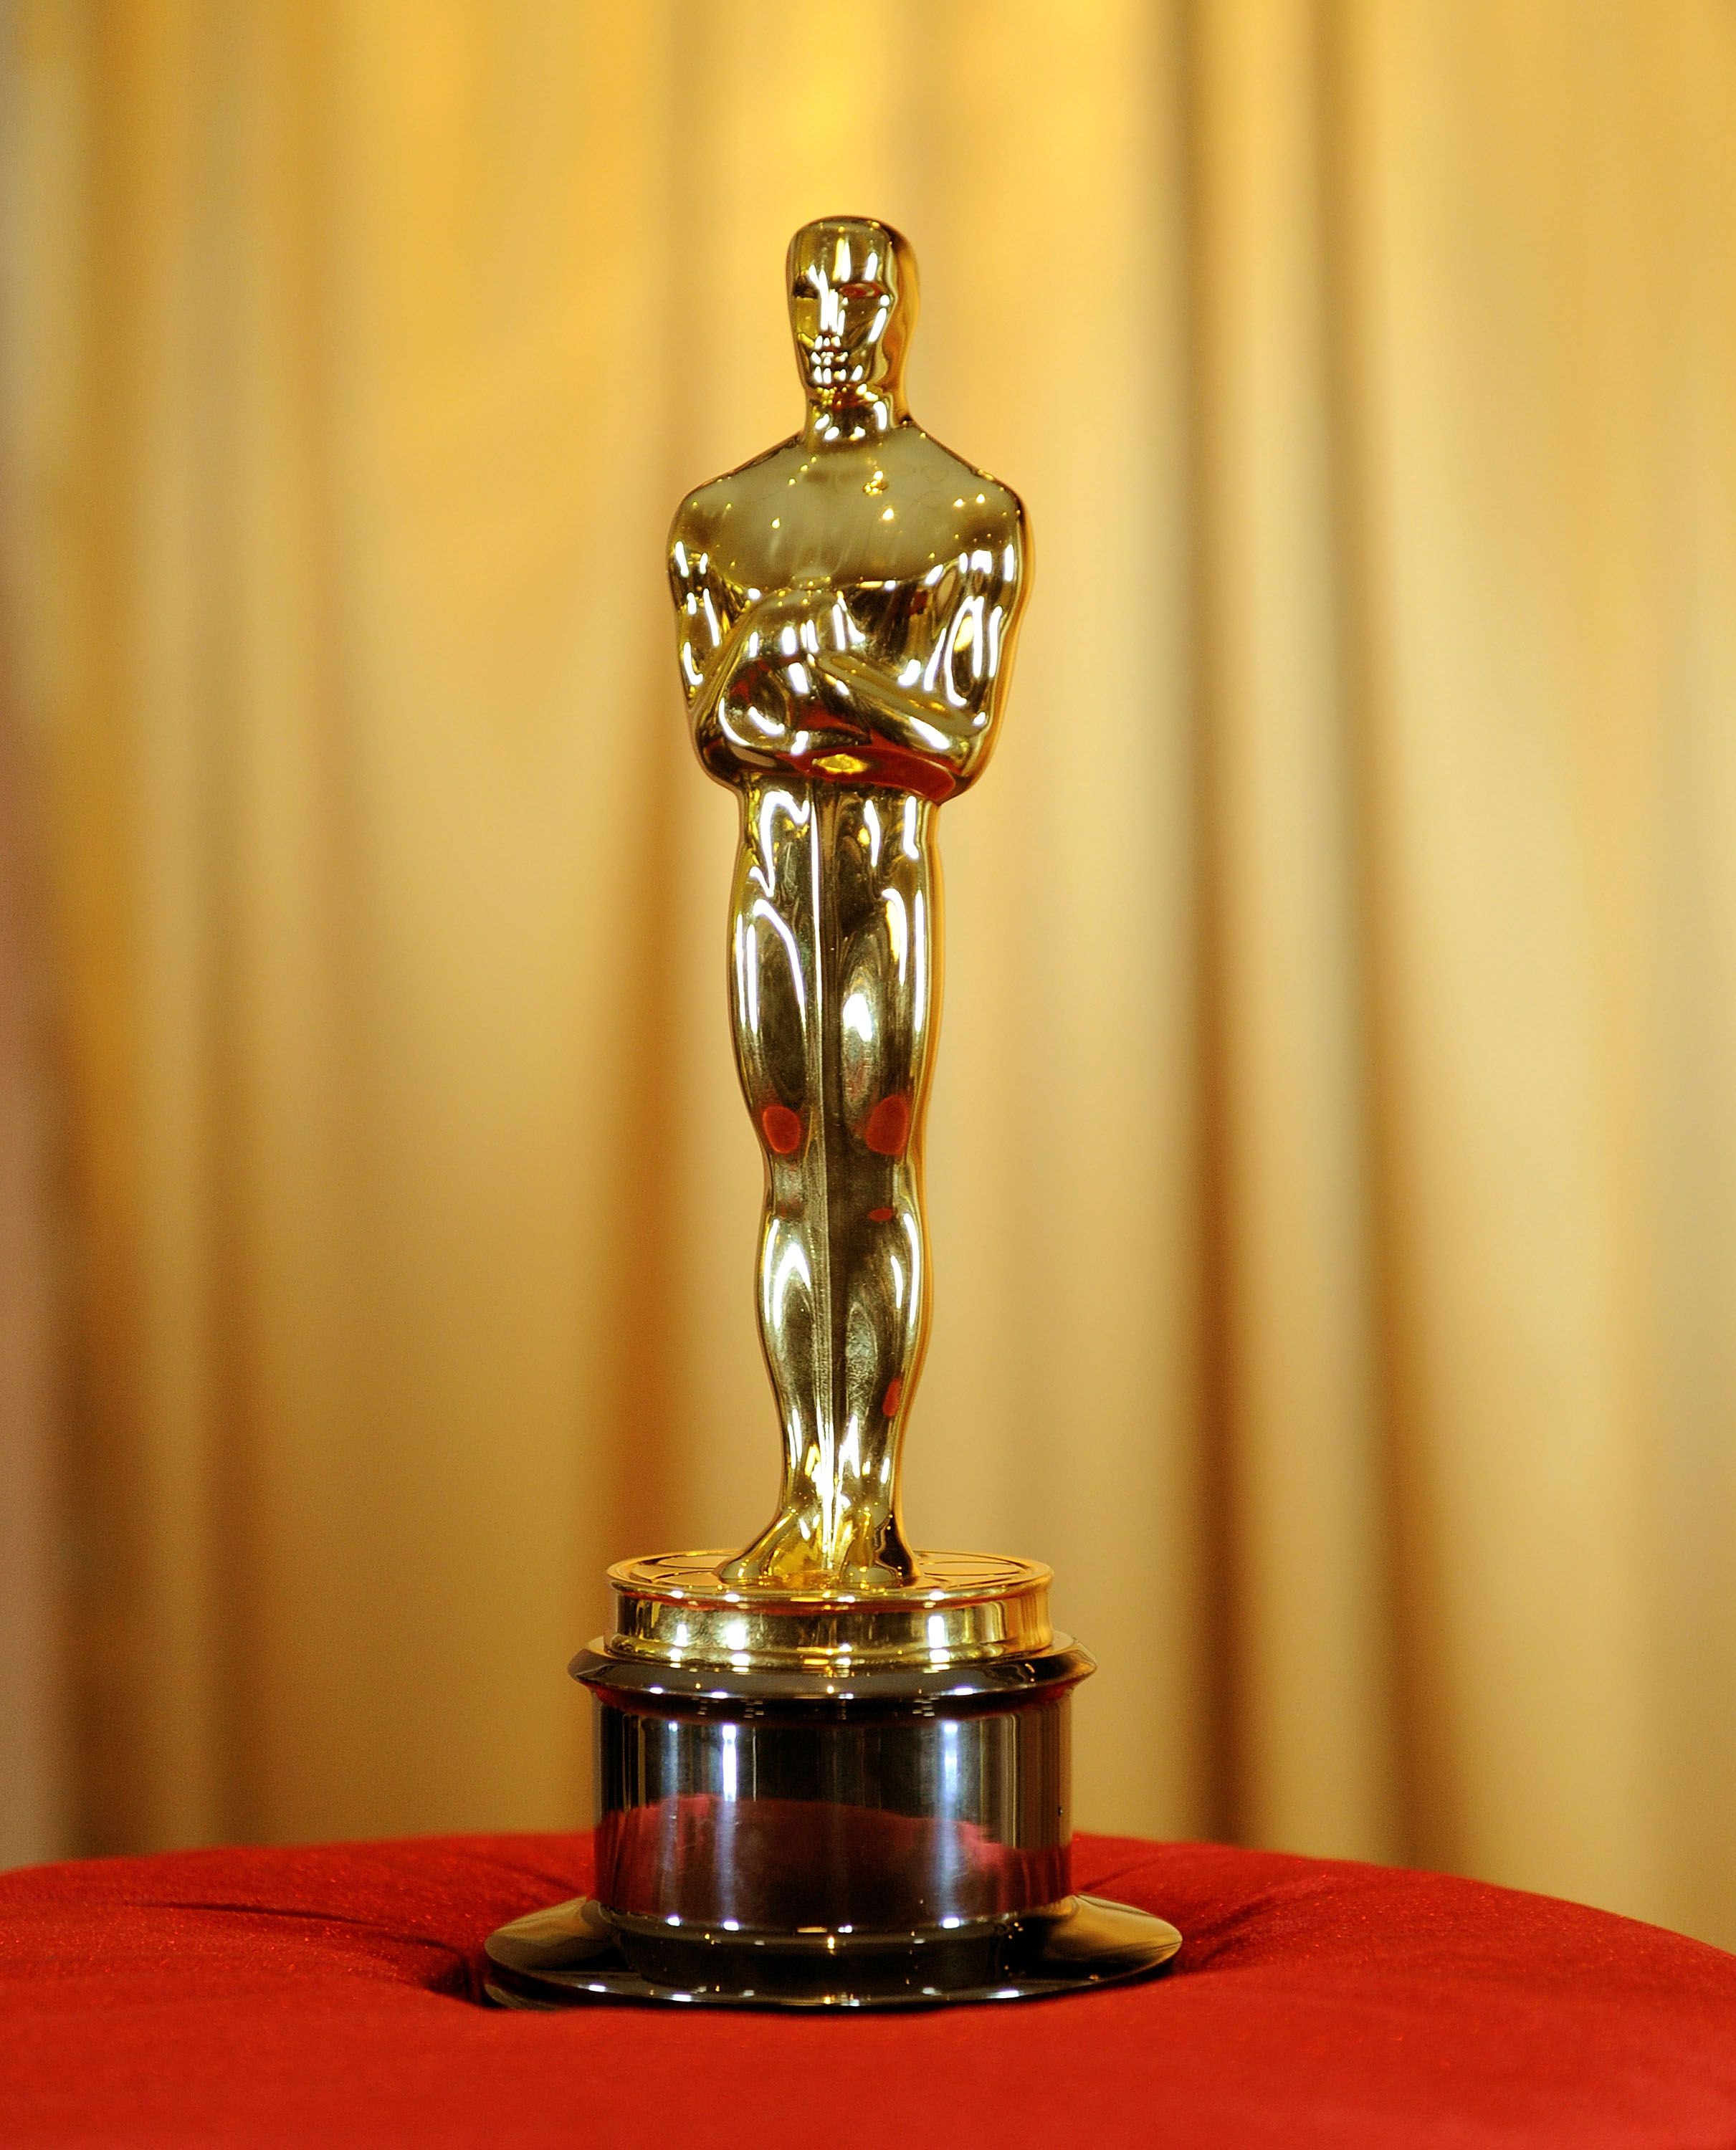 Oscars 2021 Changes - Why the 93rd Academy Awards Will Be Different